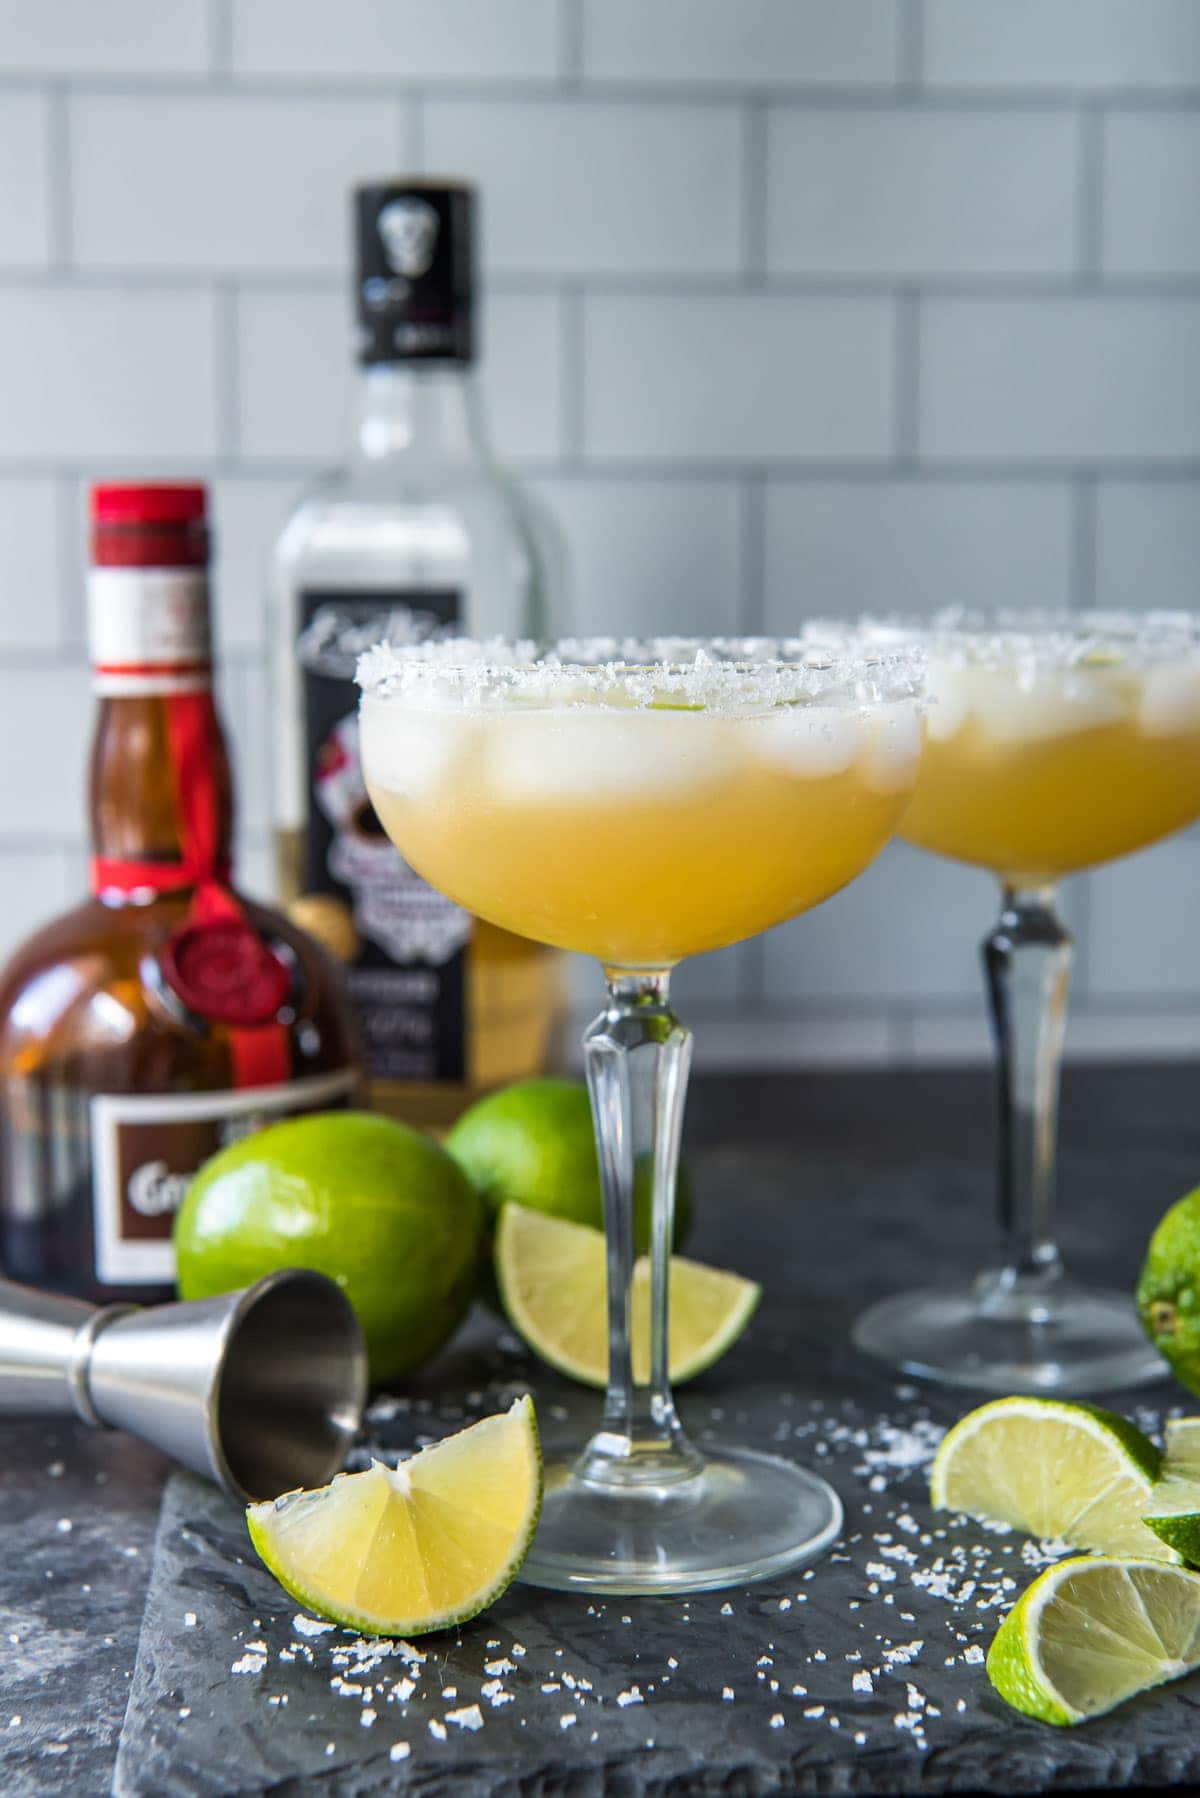 black background, lime wedges, glasses filled with cadillac margaritas, tequila, grand marnier bottles